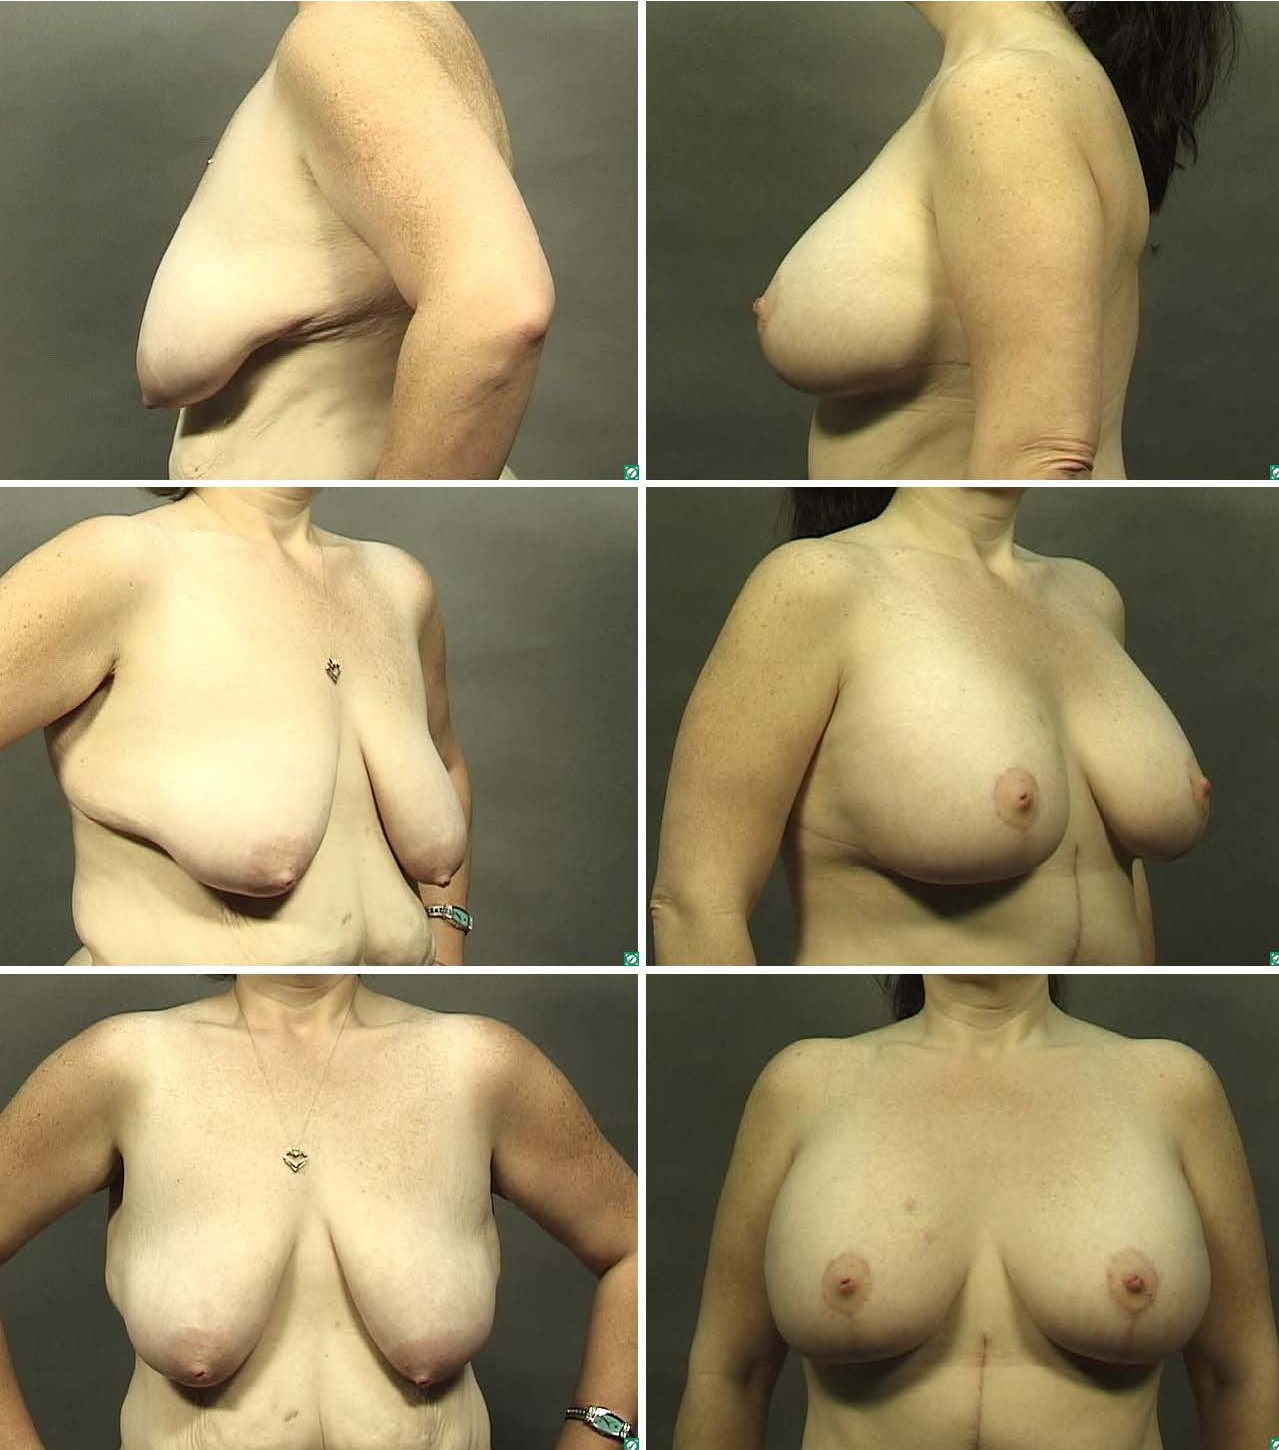 Nude before and after weight loss pics